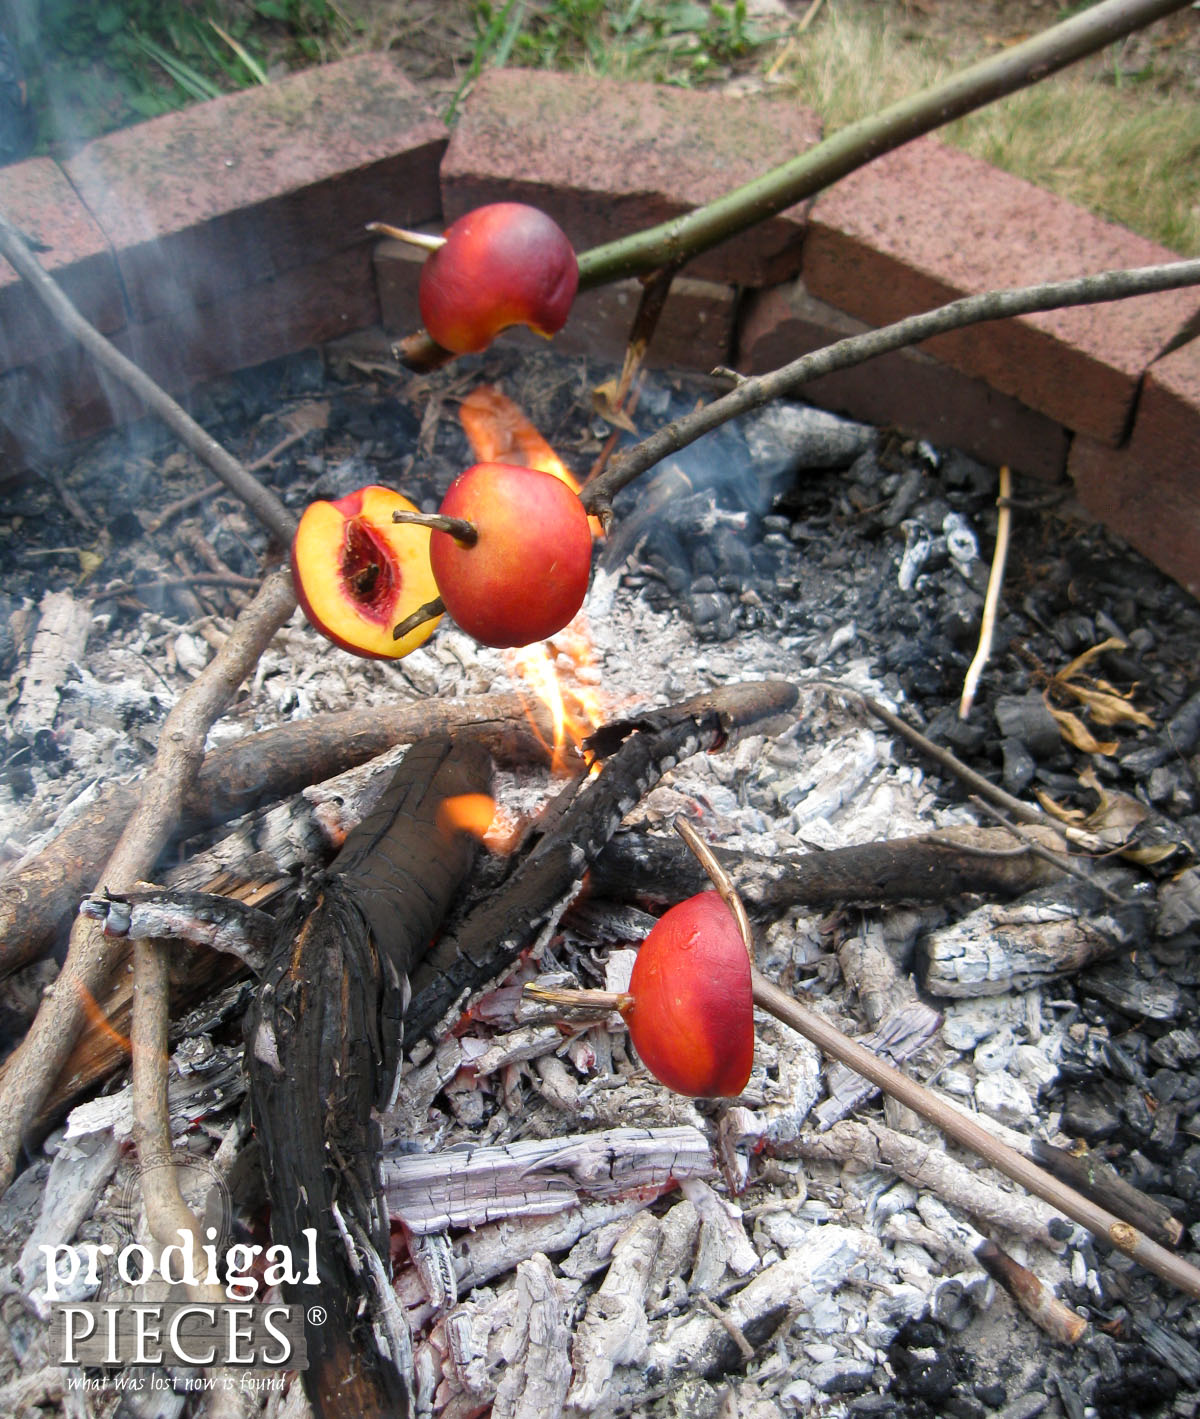 Campfire Roasting Stone Fruits for S'mores Replacement | Prodigal Pieces | www.prodigalpieces.com